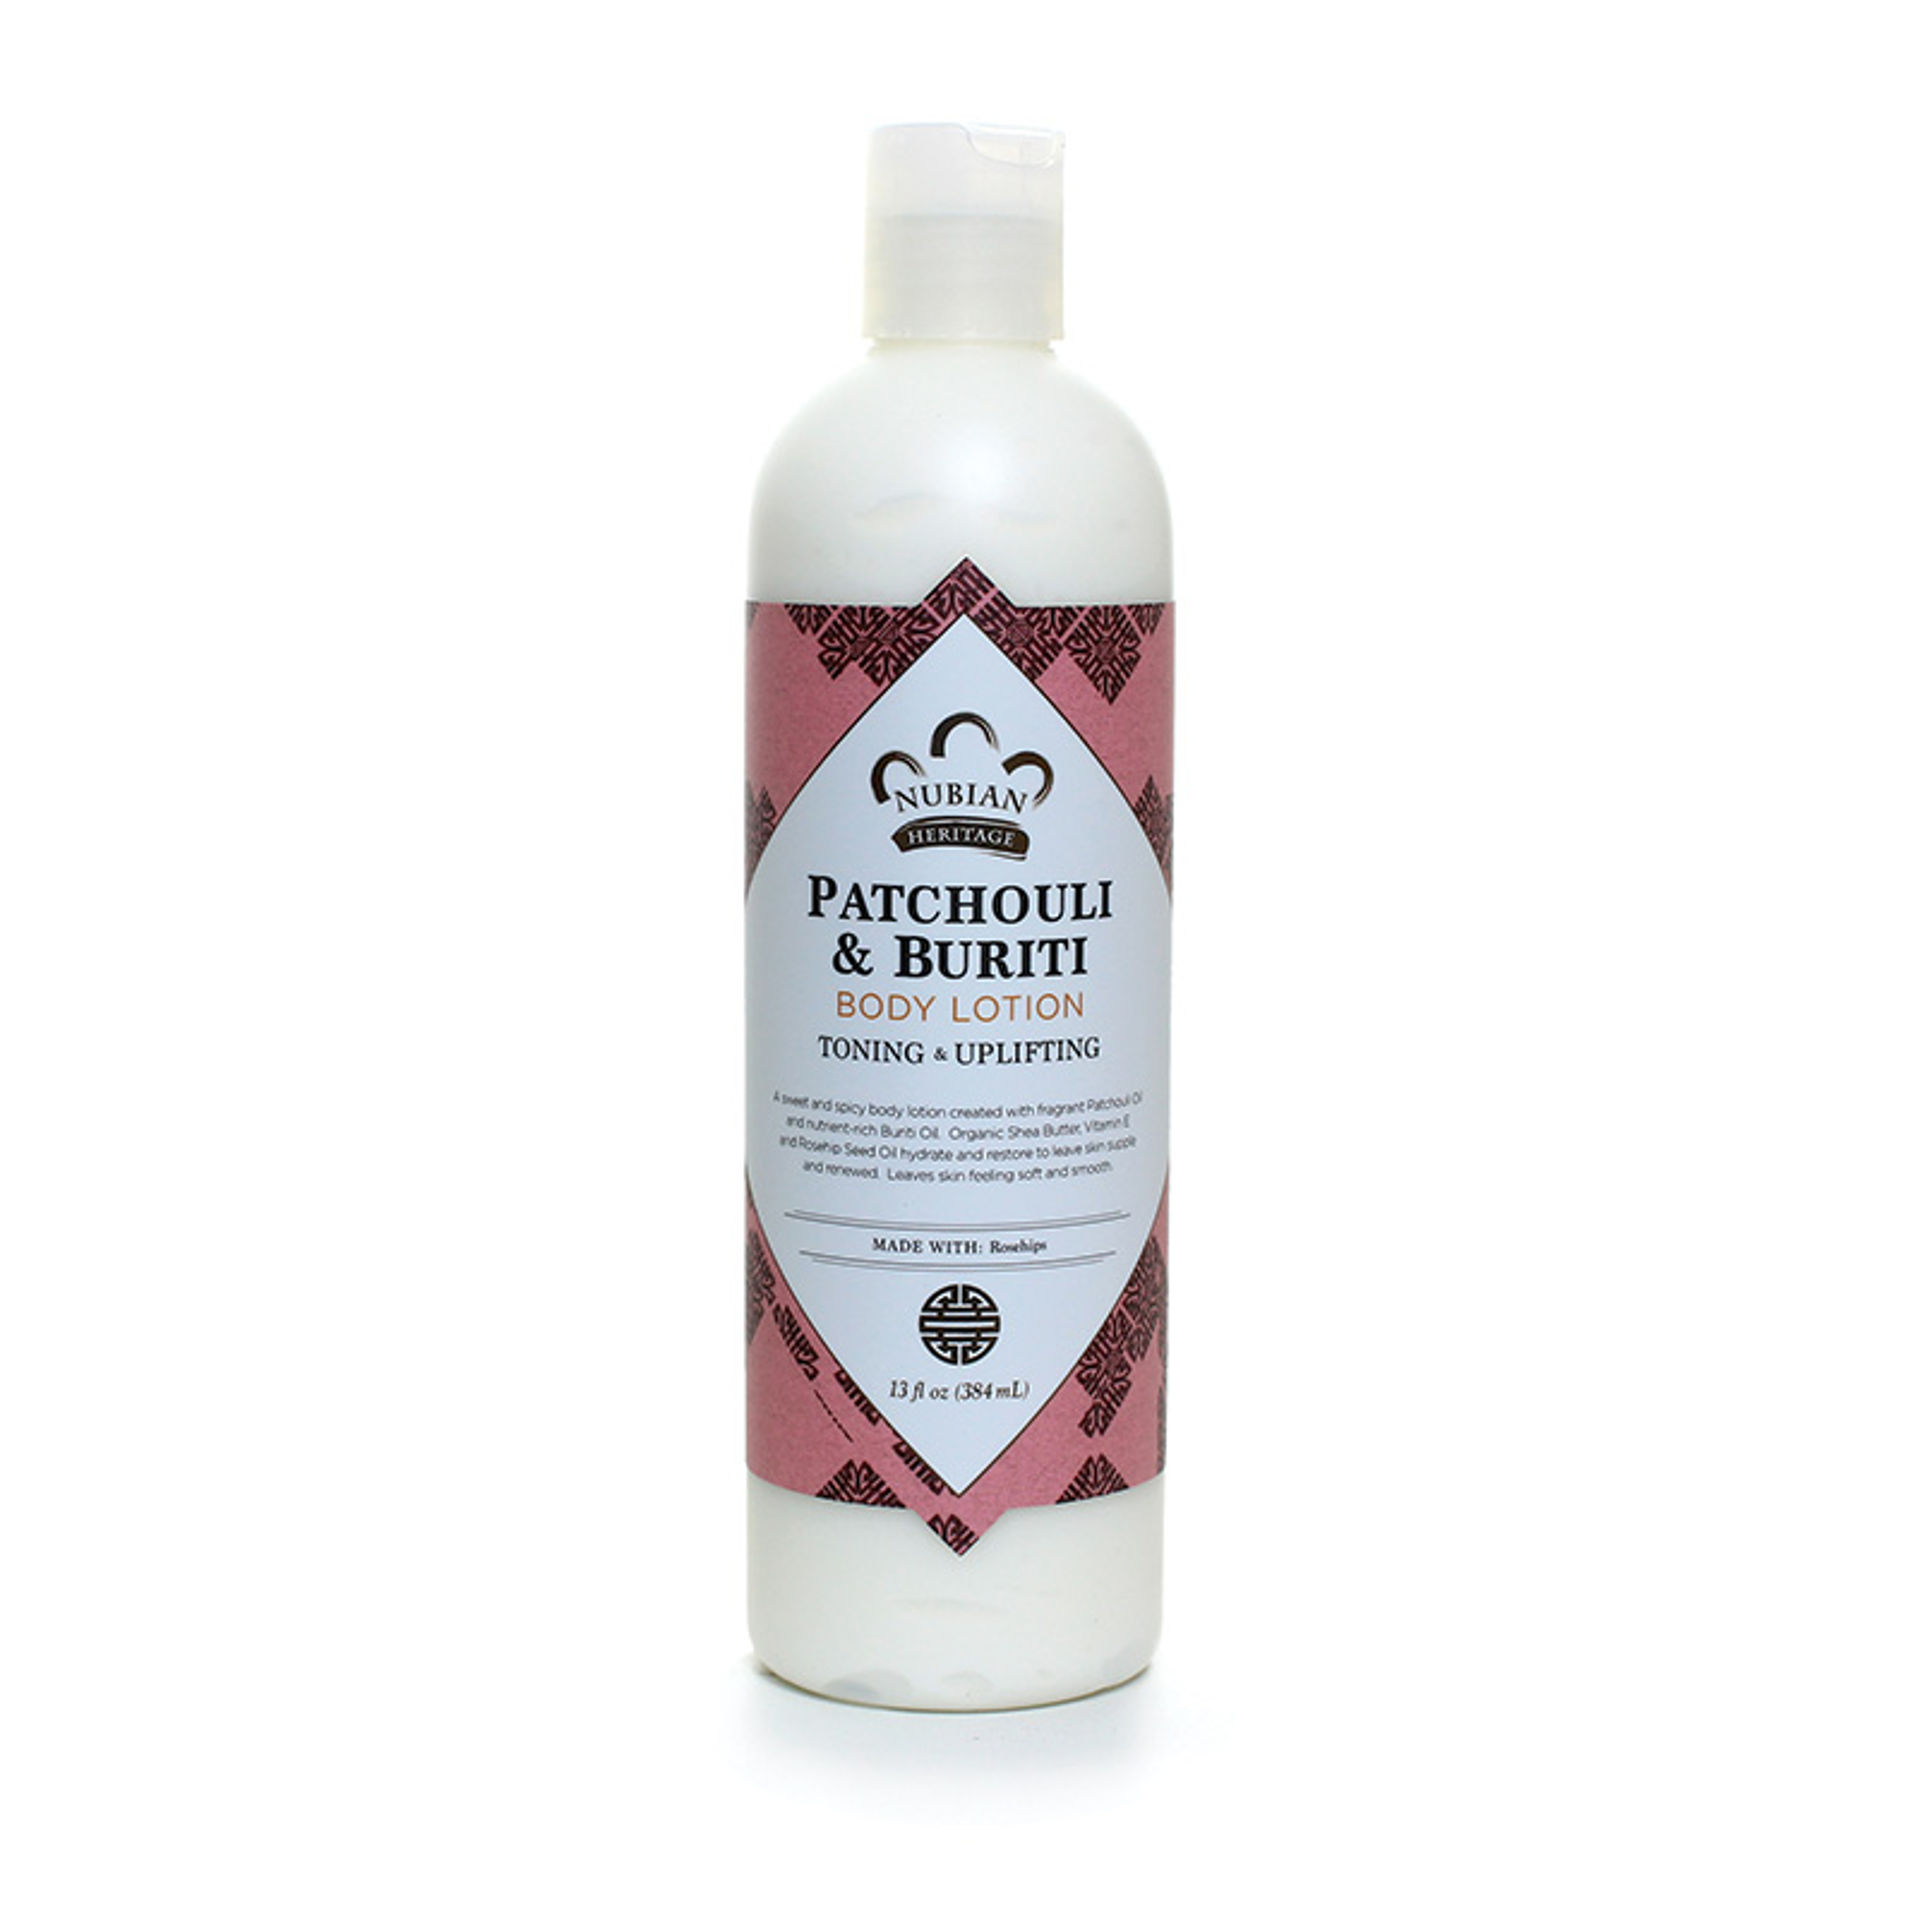 Picture of Patchouli & Buriti Lotion - 13 oz.